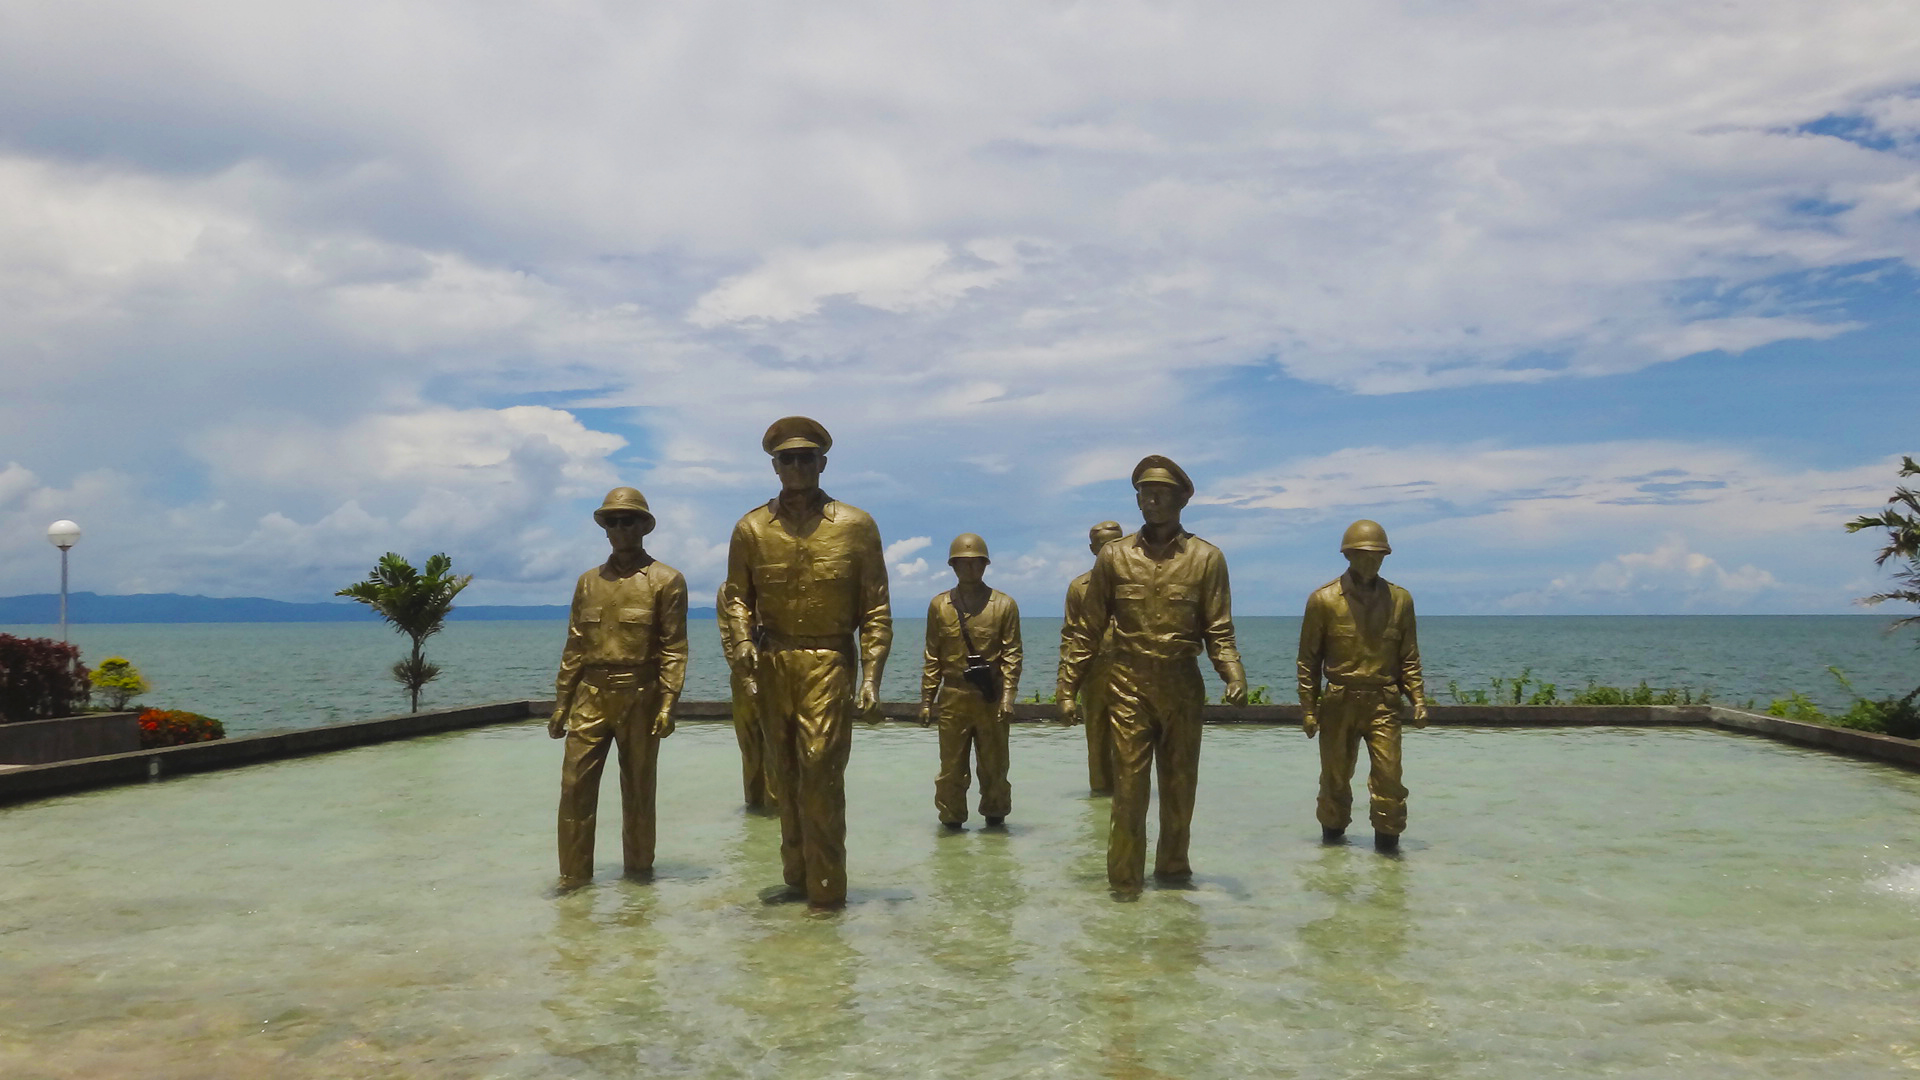 the general douglas macarthur landing memoria essay The leyte landing memorial in red beach, palo, marks the spot where american liberation forces of general douglas macarthur landed the battle of leyte in the pacific campaign of world war ii was the invasion and conquest of leyte in the philippines by the united states and australian forces and allied filipino guerrillas under the command of general douglas macarthur and waged against the.